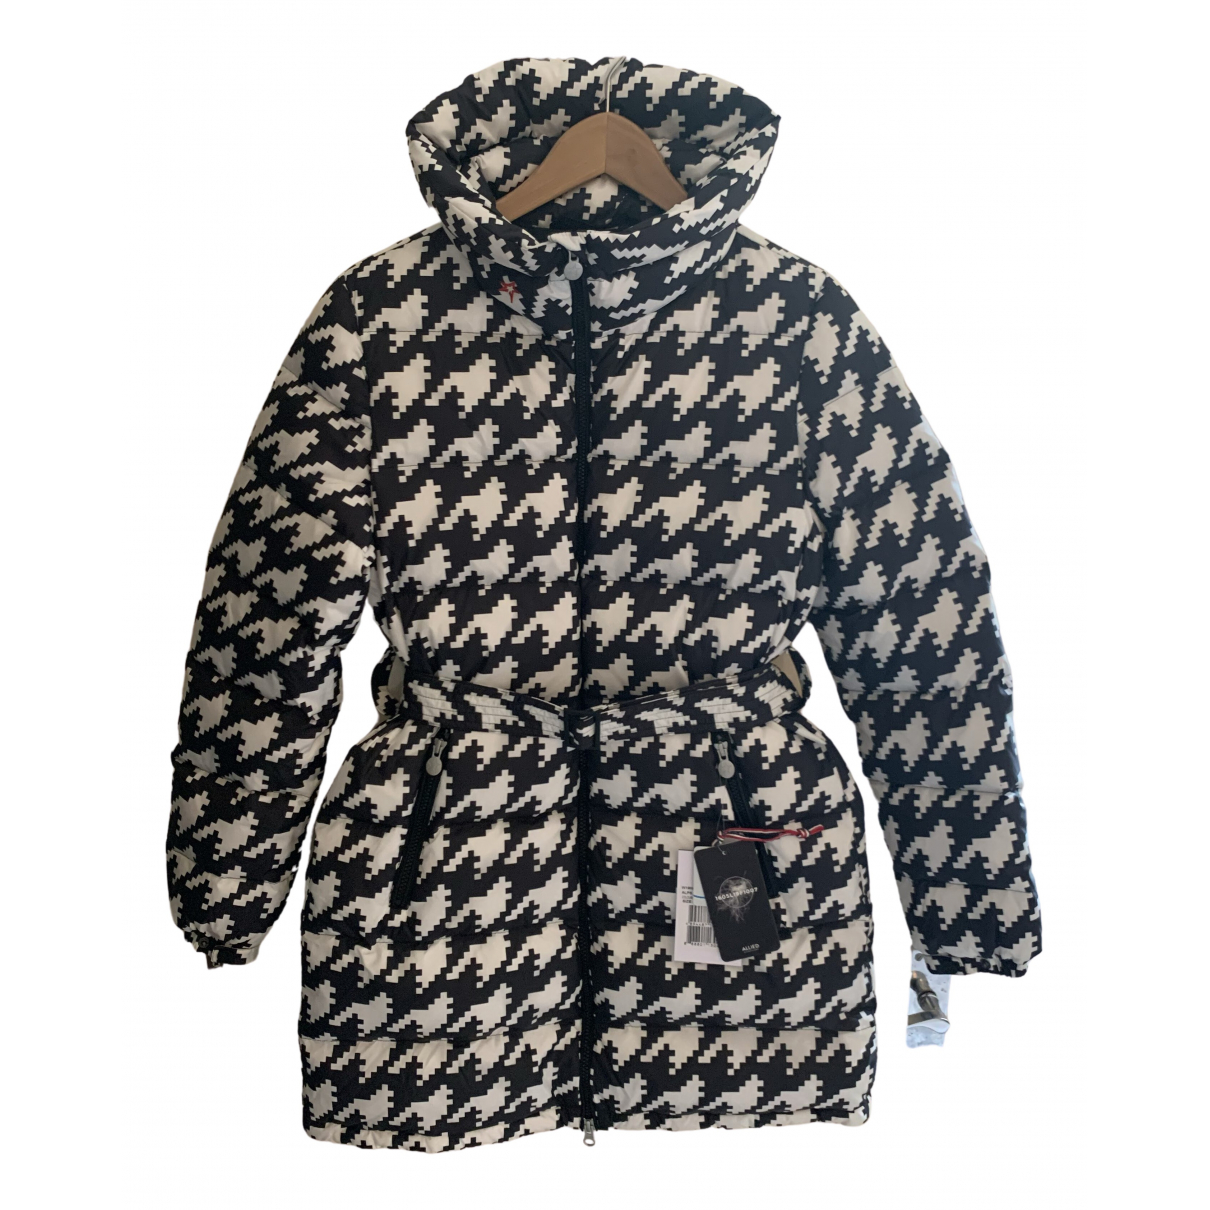 Perfect Moment \N jacket for Women S International